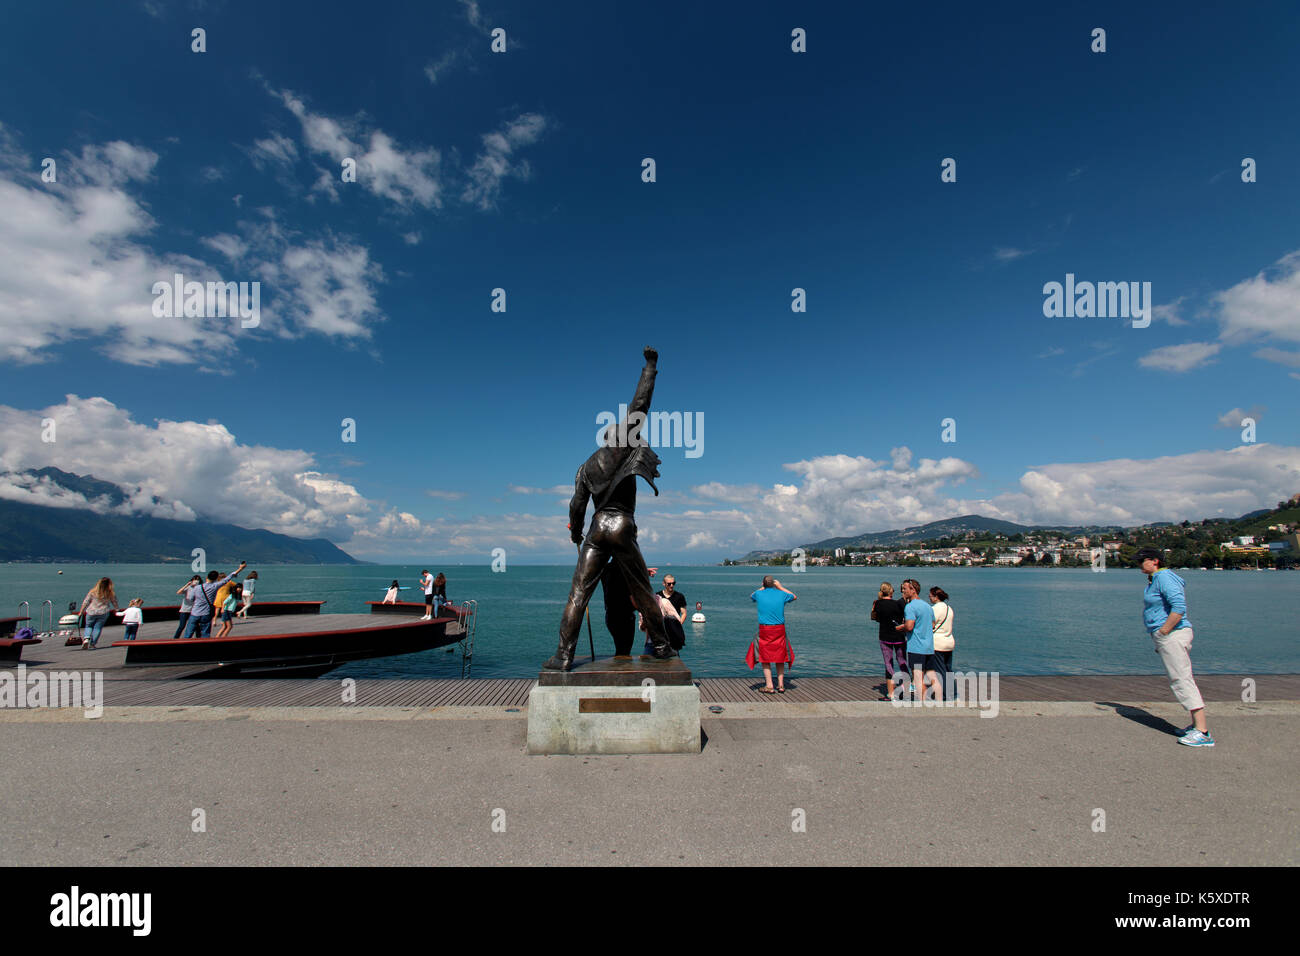 The statue of Freddie Mercury overlooking Lake Geneva in Montreux Switzerland. Freddie is surrounded by fans of - Stock Image